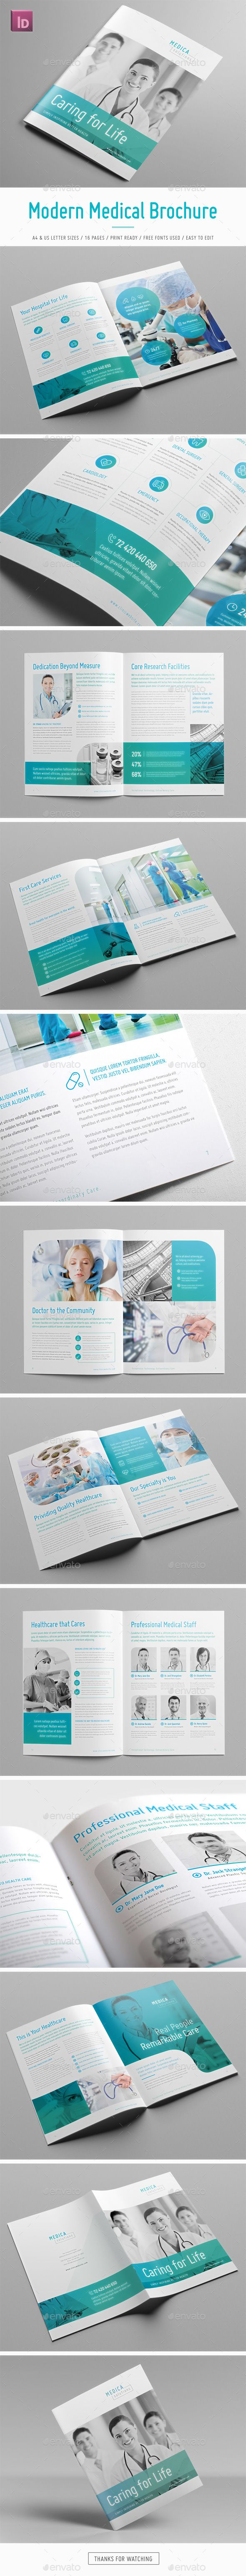 Modern Medical Brochure - #Informational #Brochures Download here: https://graphicriver.net/item/modern-medical-brochure/19577265?ref=alena994